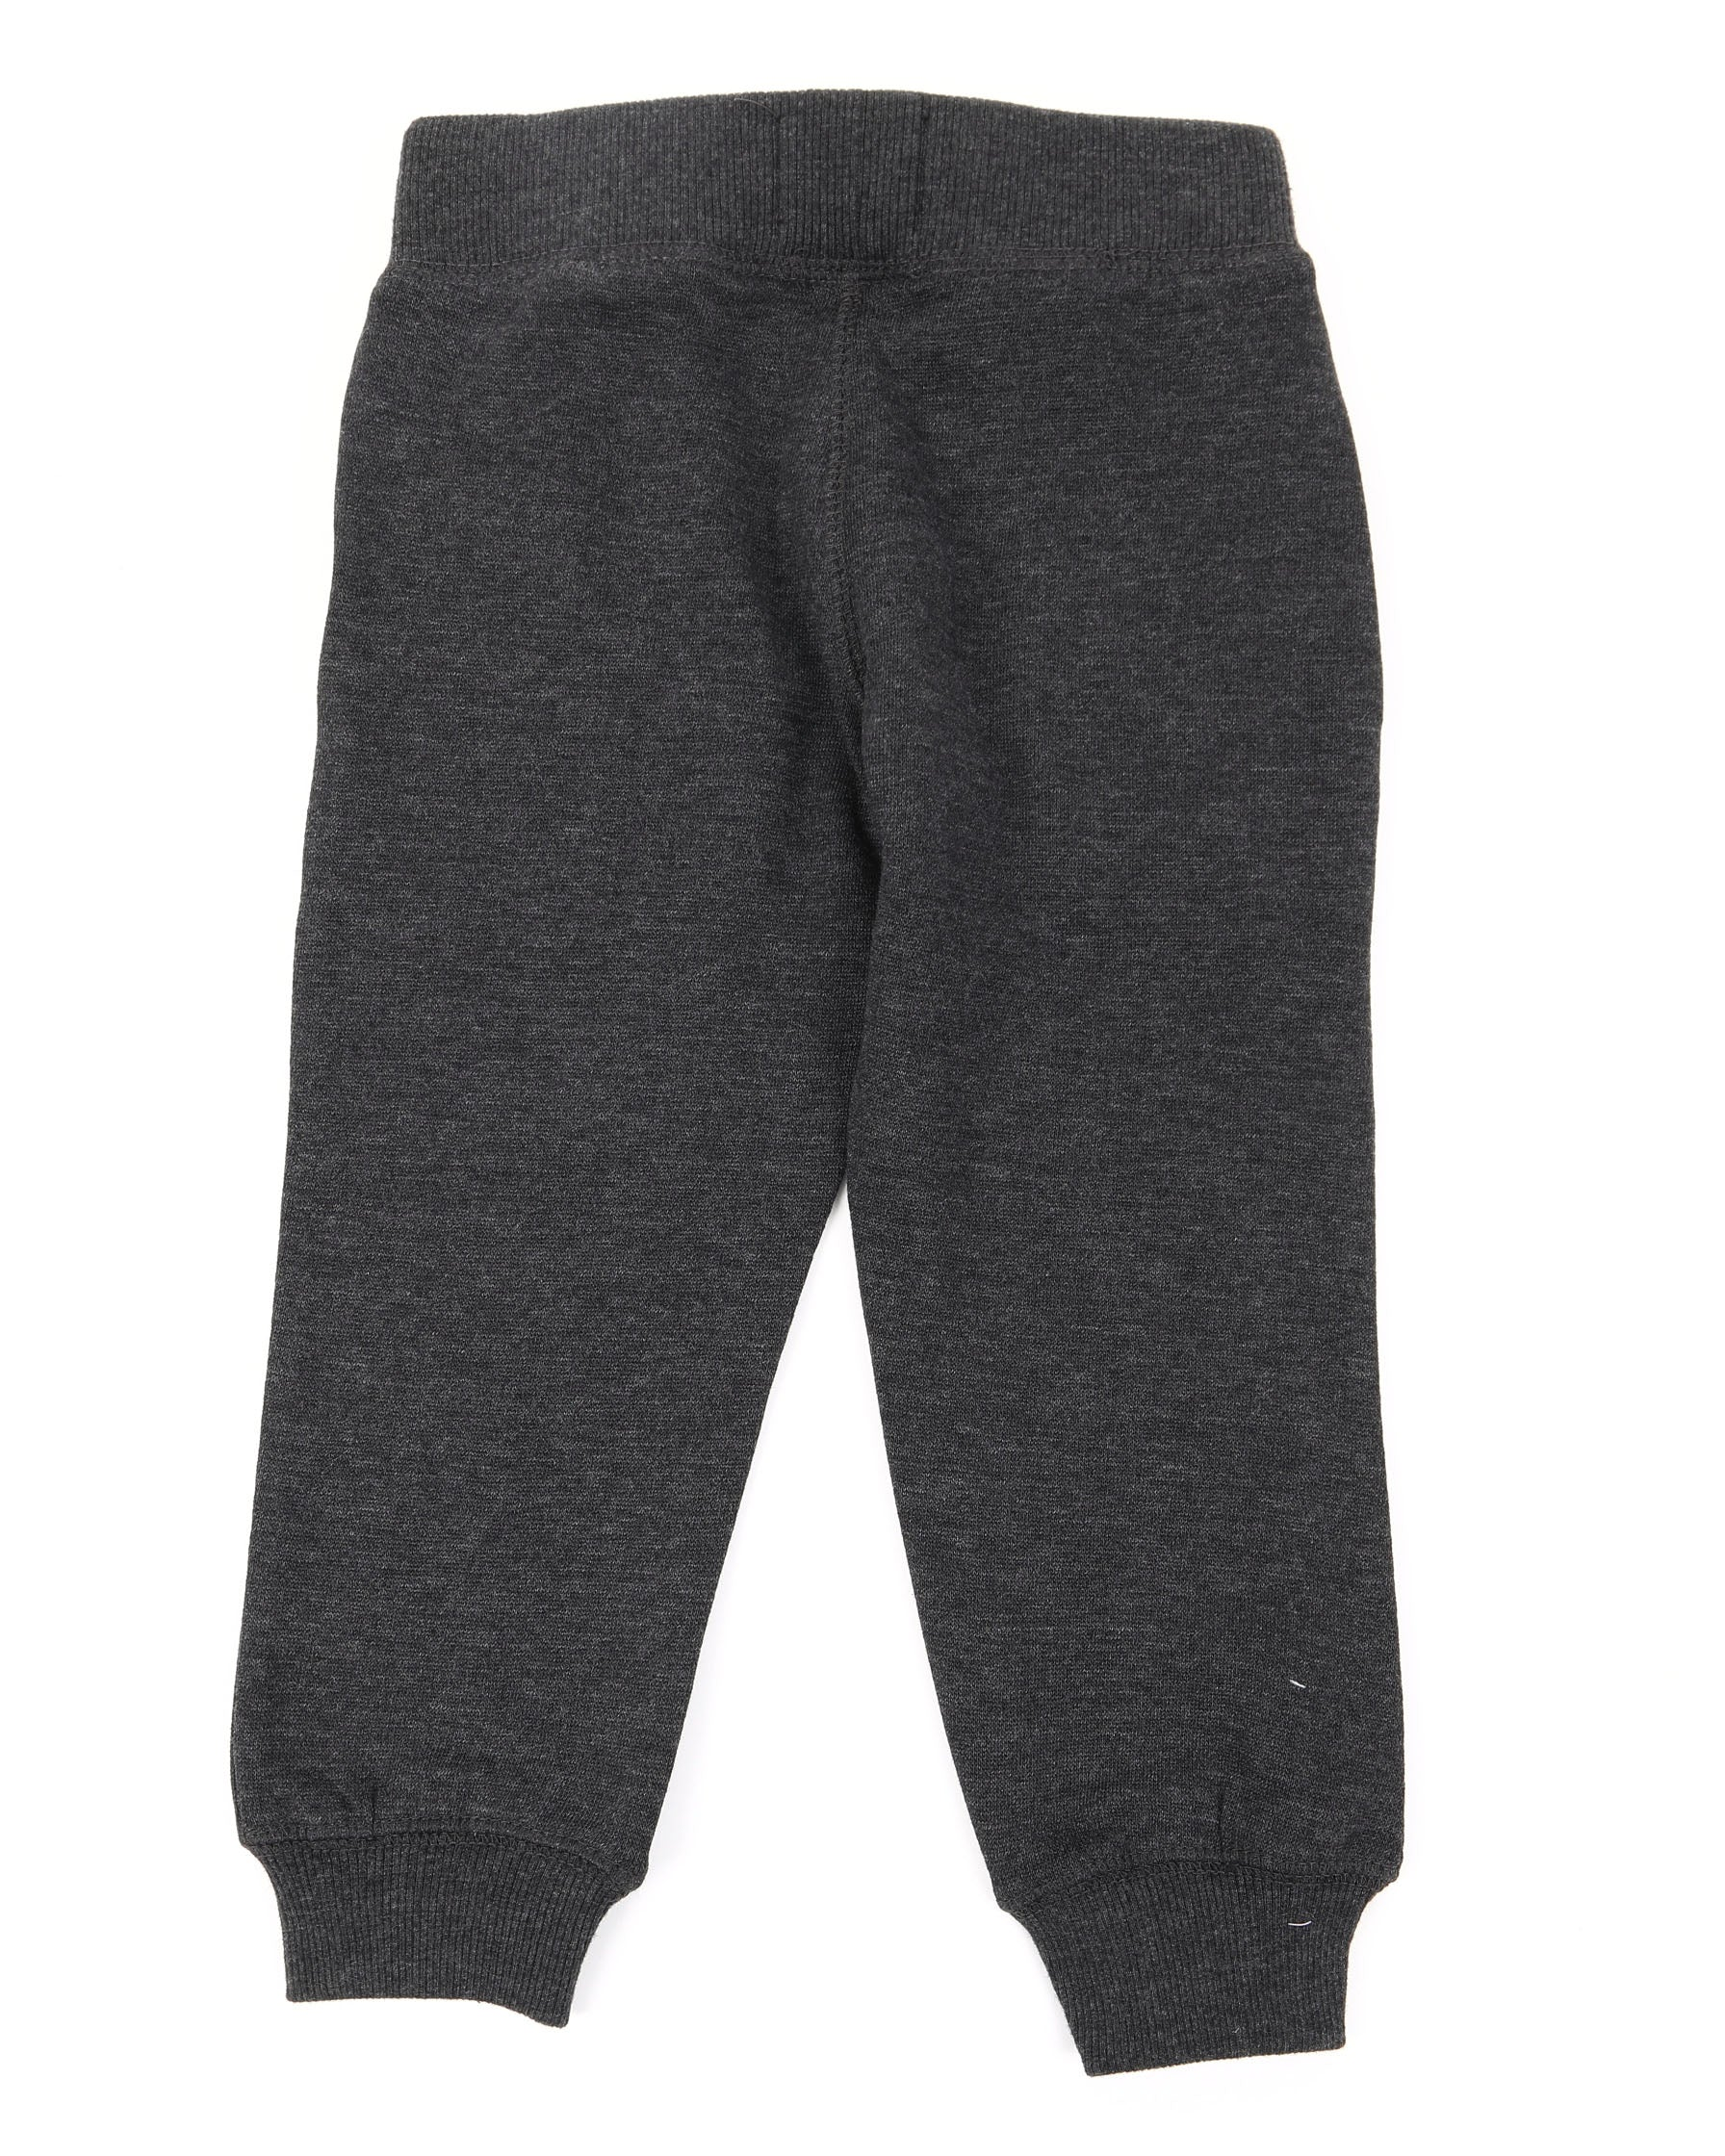 True Religion Line Joggers - FLY GUYZ